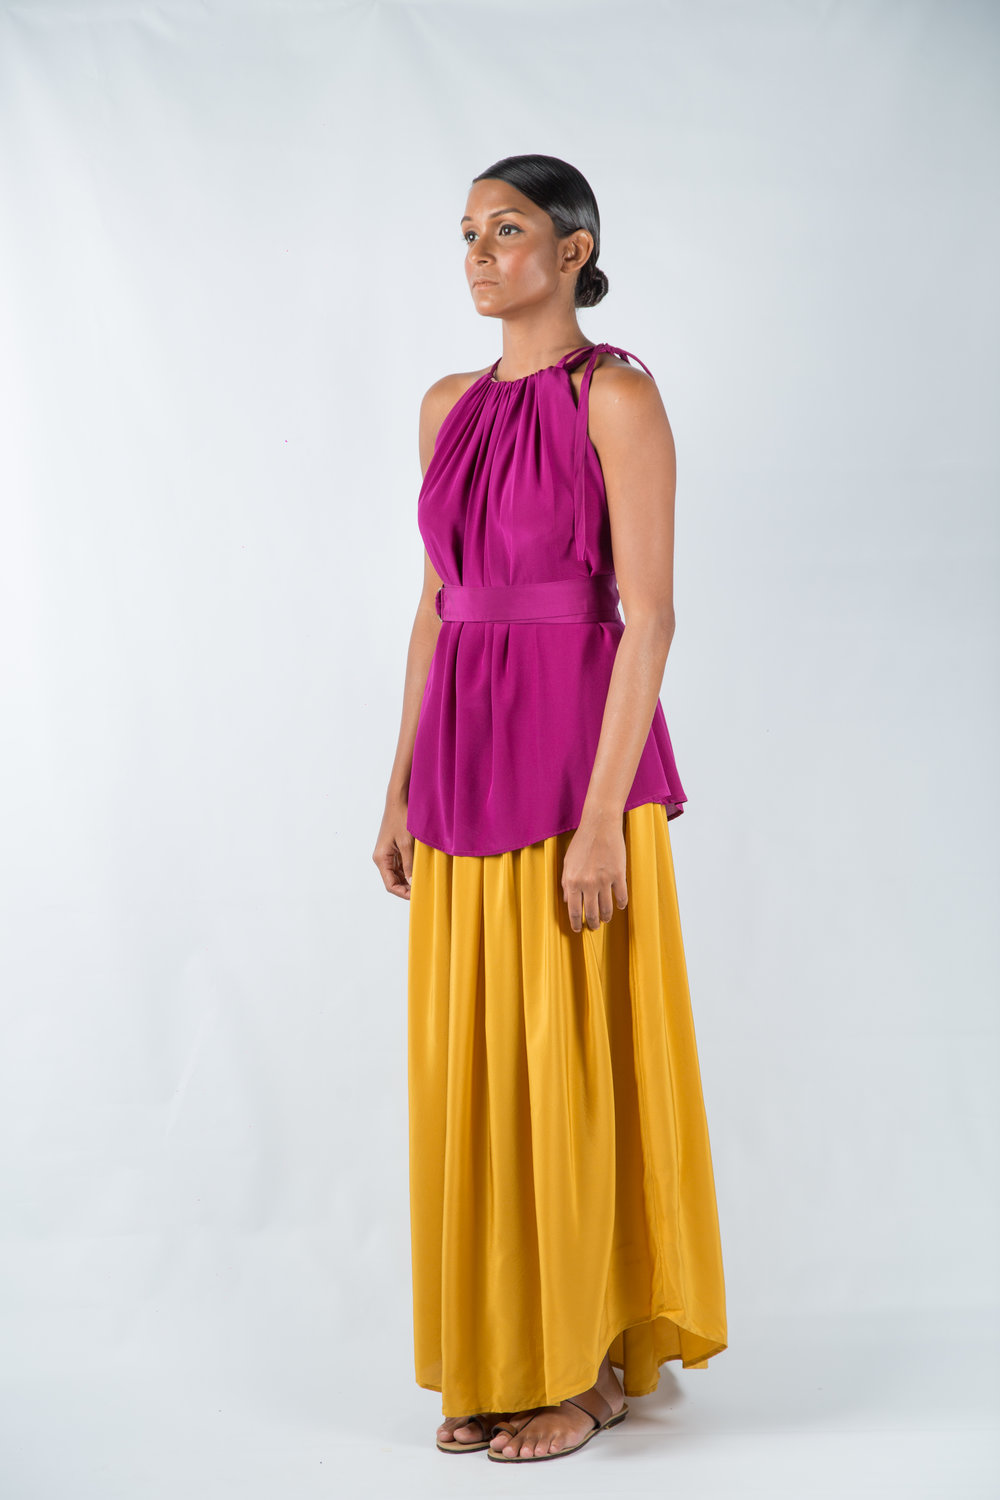 Asha layer dress 1 - plum_saffron.jpg